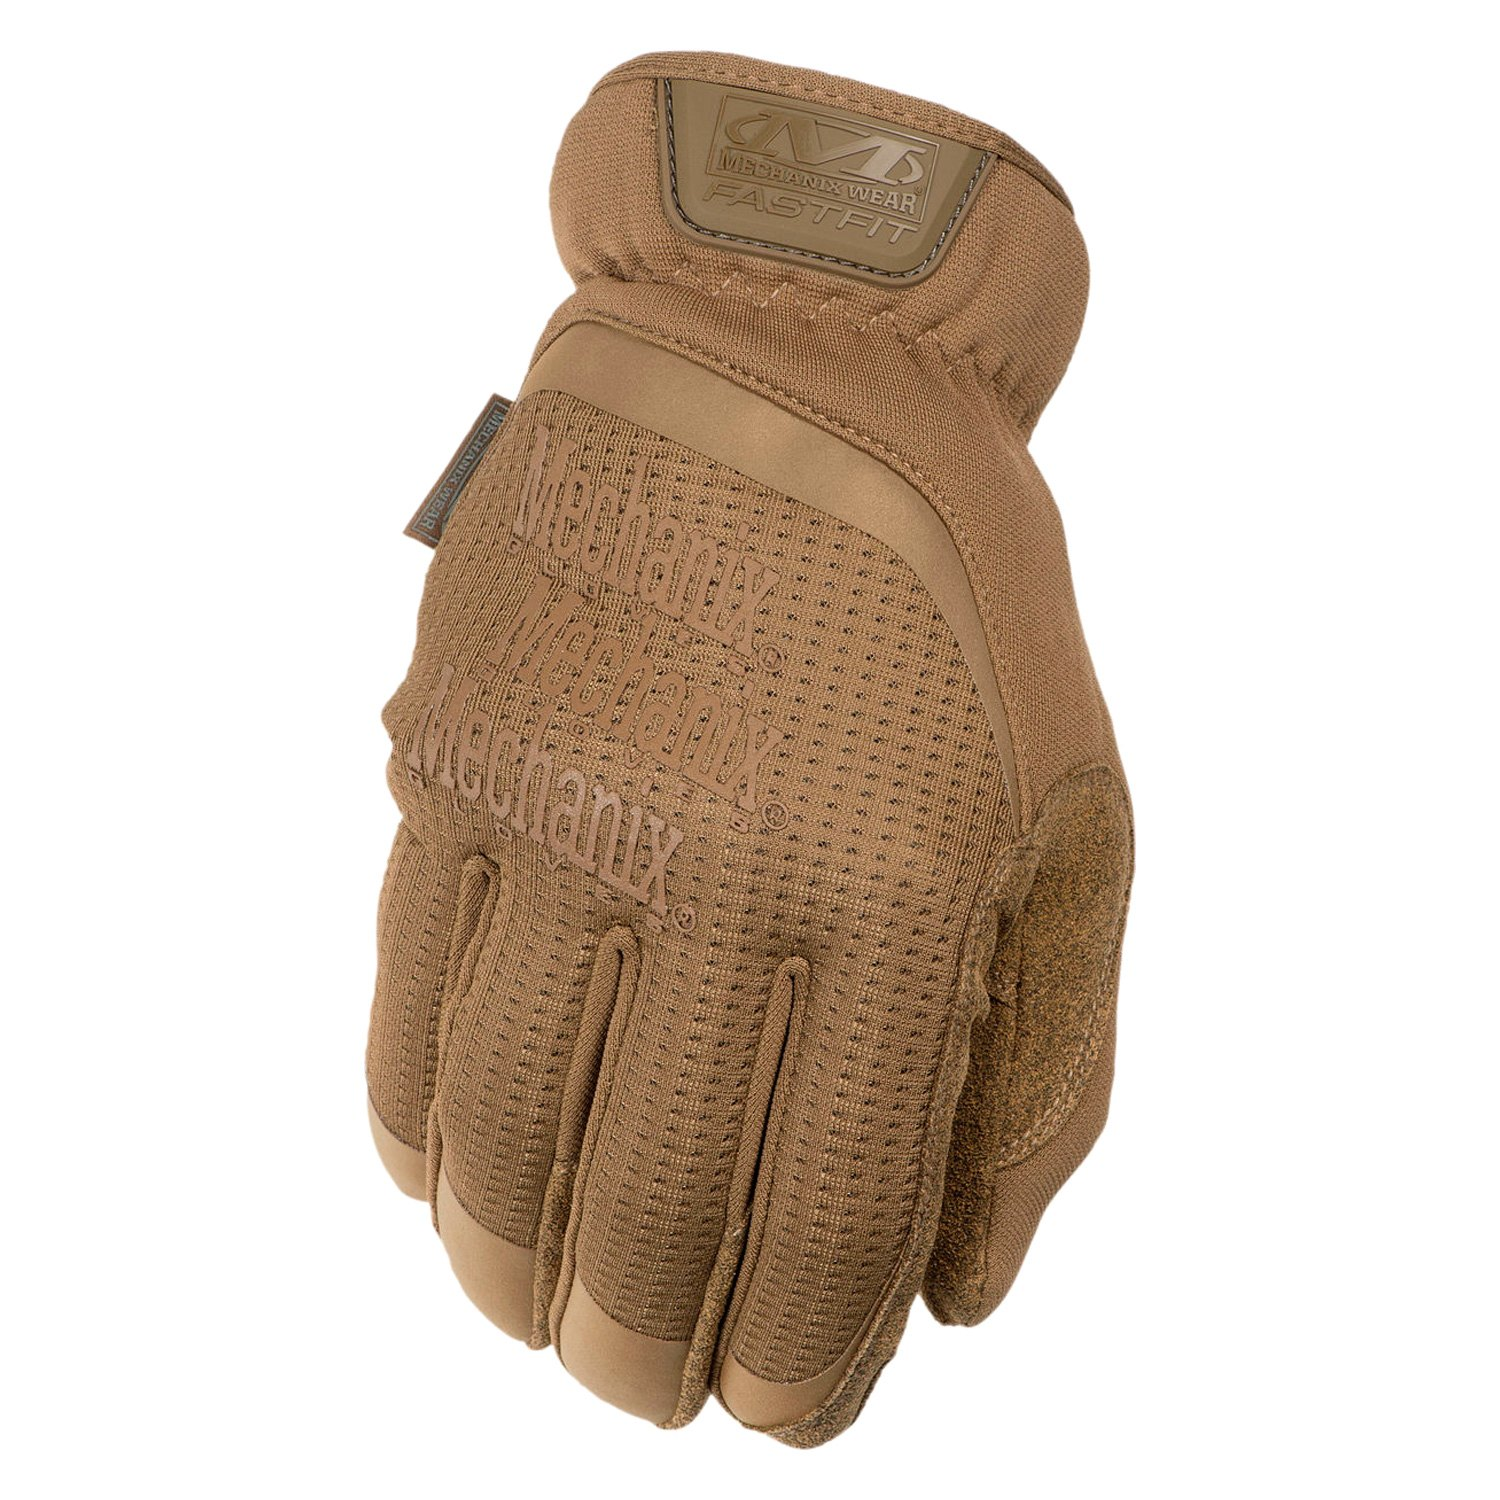 Gloves FAST FIT COYOTE 8/S 0.6mm palm, touch screen capable